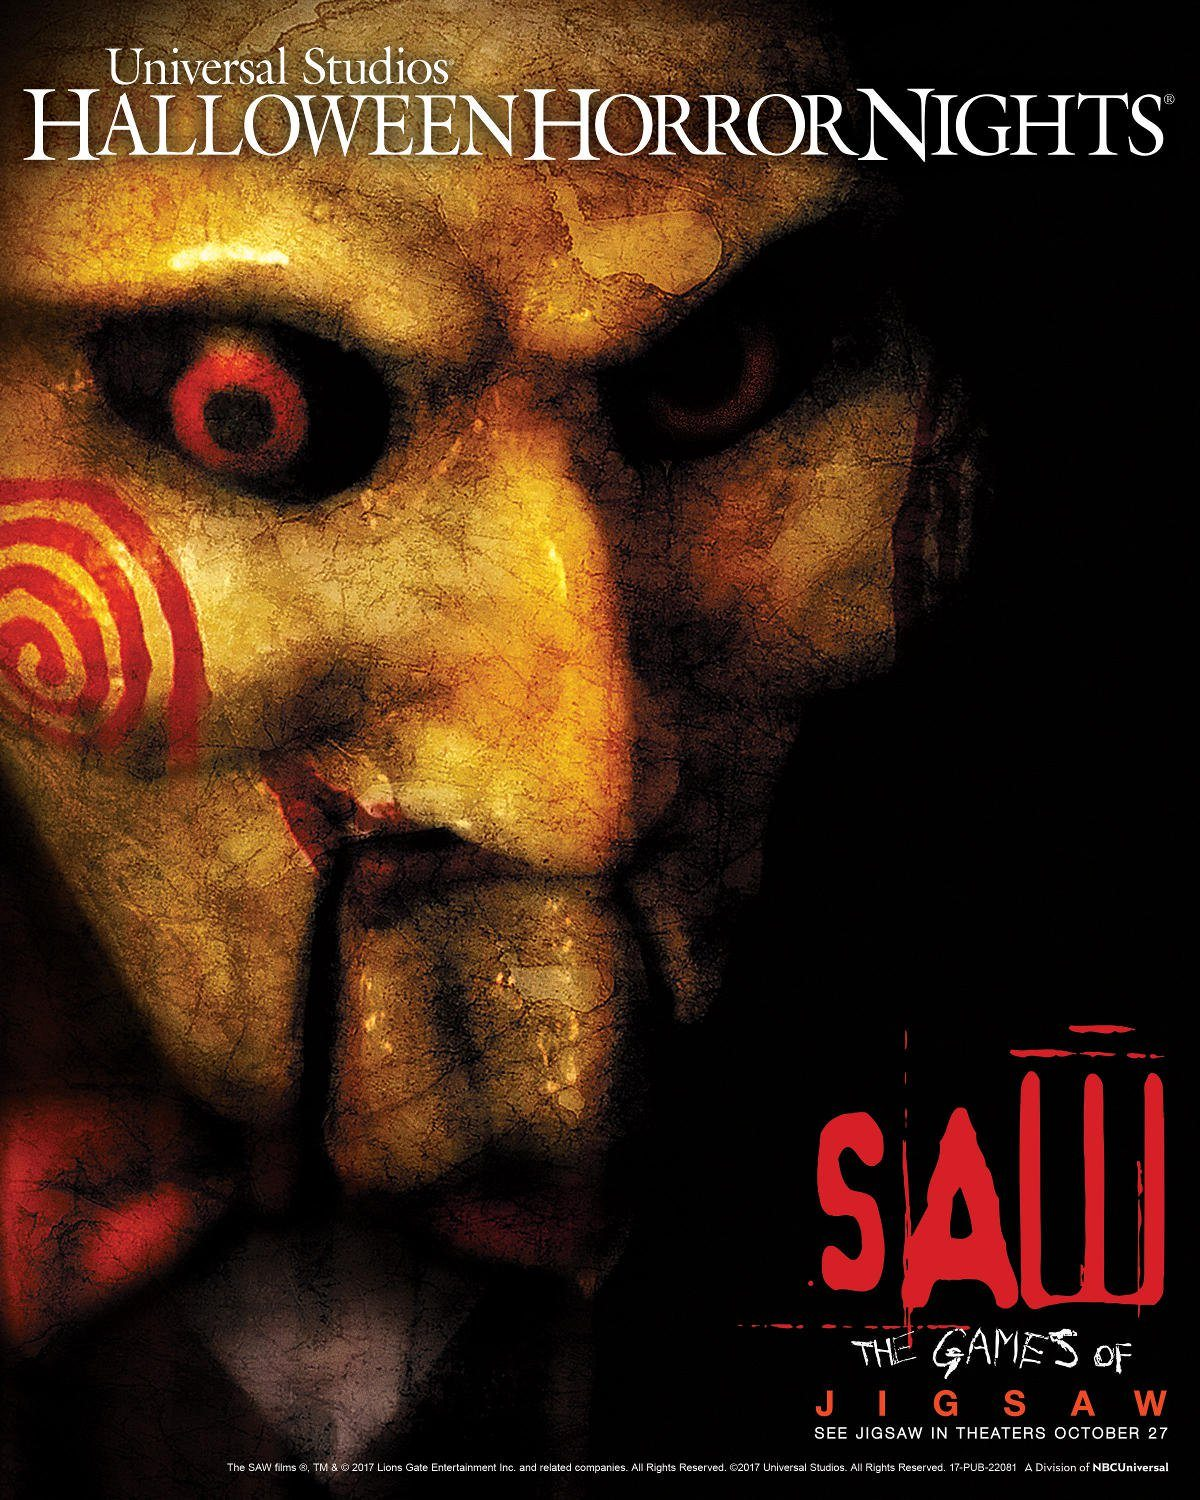 the saw series one of the highest grossing horror film franchises of all time makes its return to halloween horror nights bringing the blockbusters